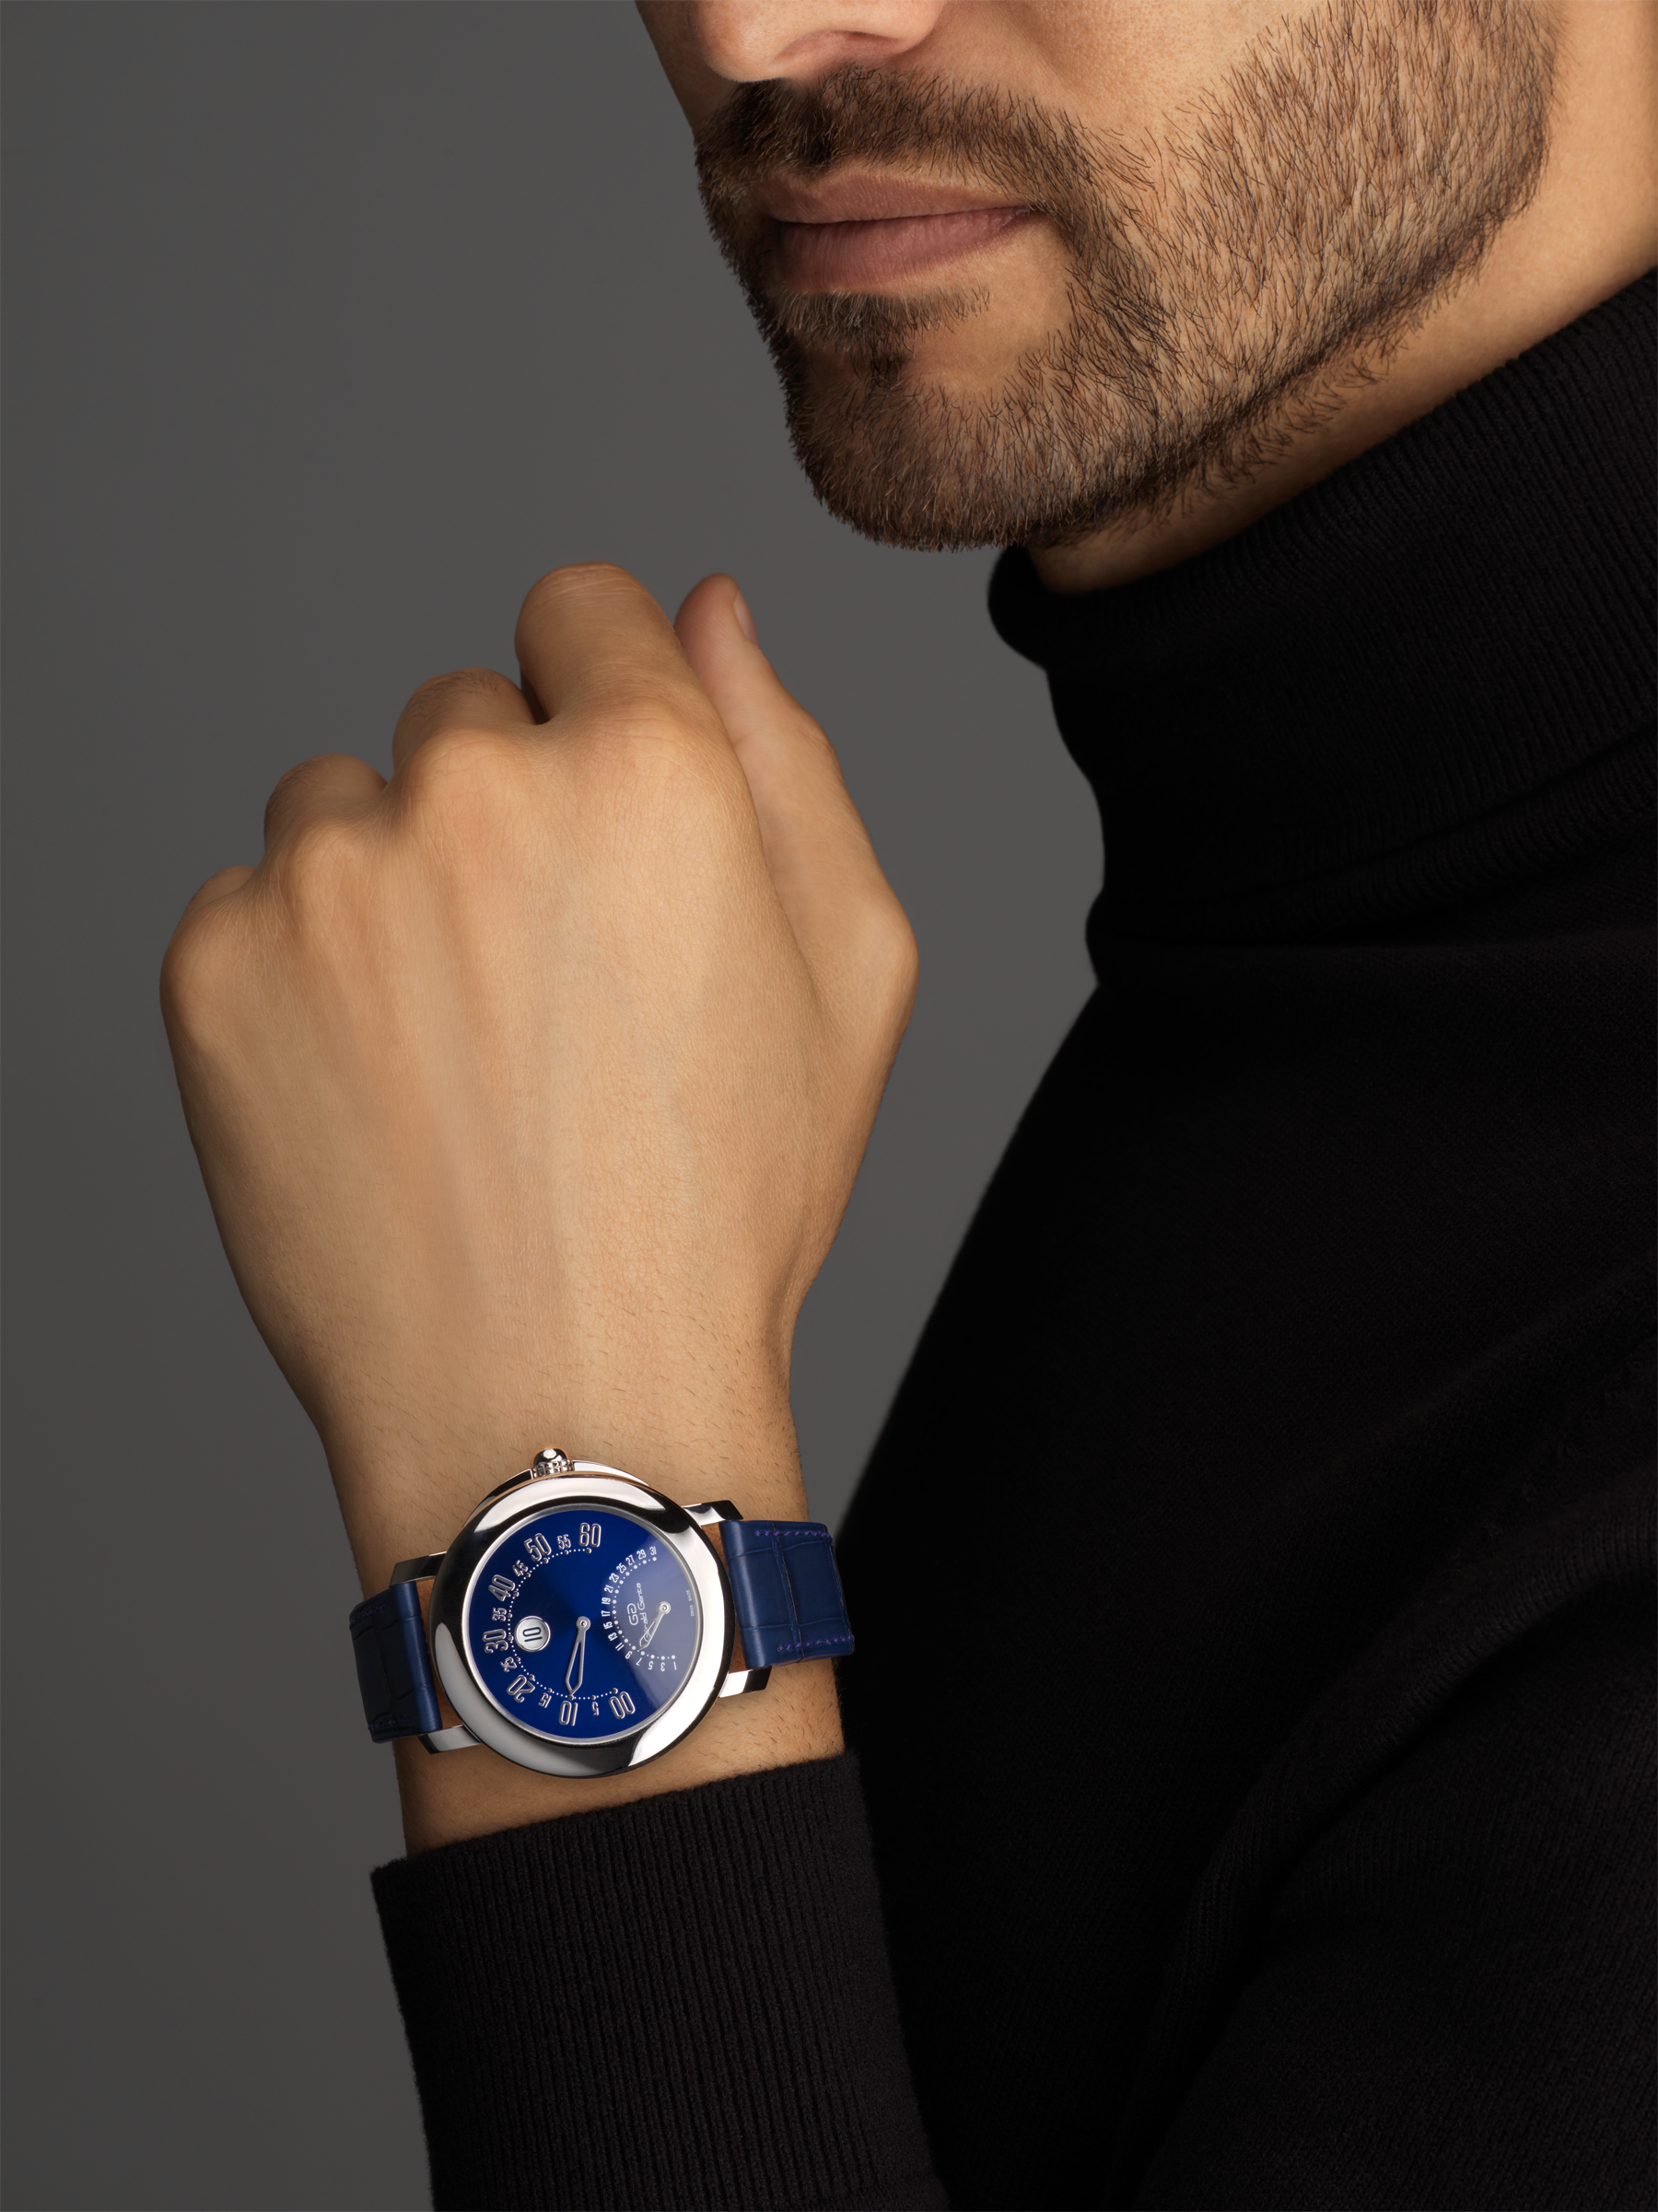 Gerald Genta 50th Anniversary Arena Bi-retro watch with mechanical manufacture movement, bidirectional automatic winding, jumping hours, retrograde minutes (210°) and date (180°), 41 mm platinum case, blue lacquered dial and blue alligator bracelet 103191 image 3